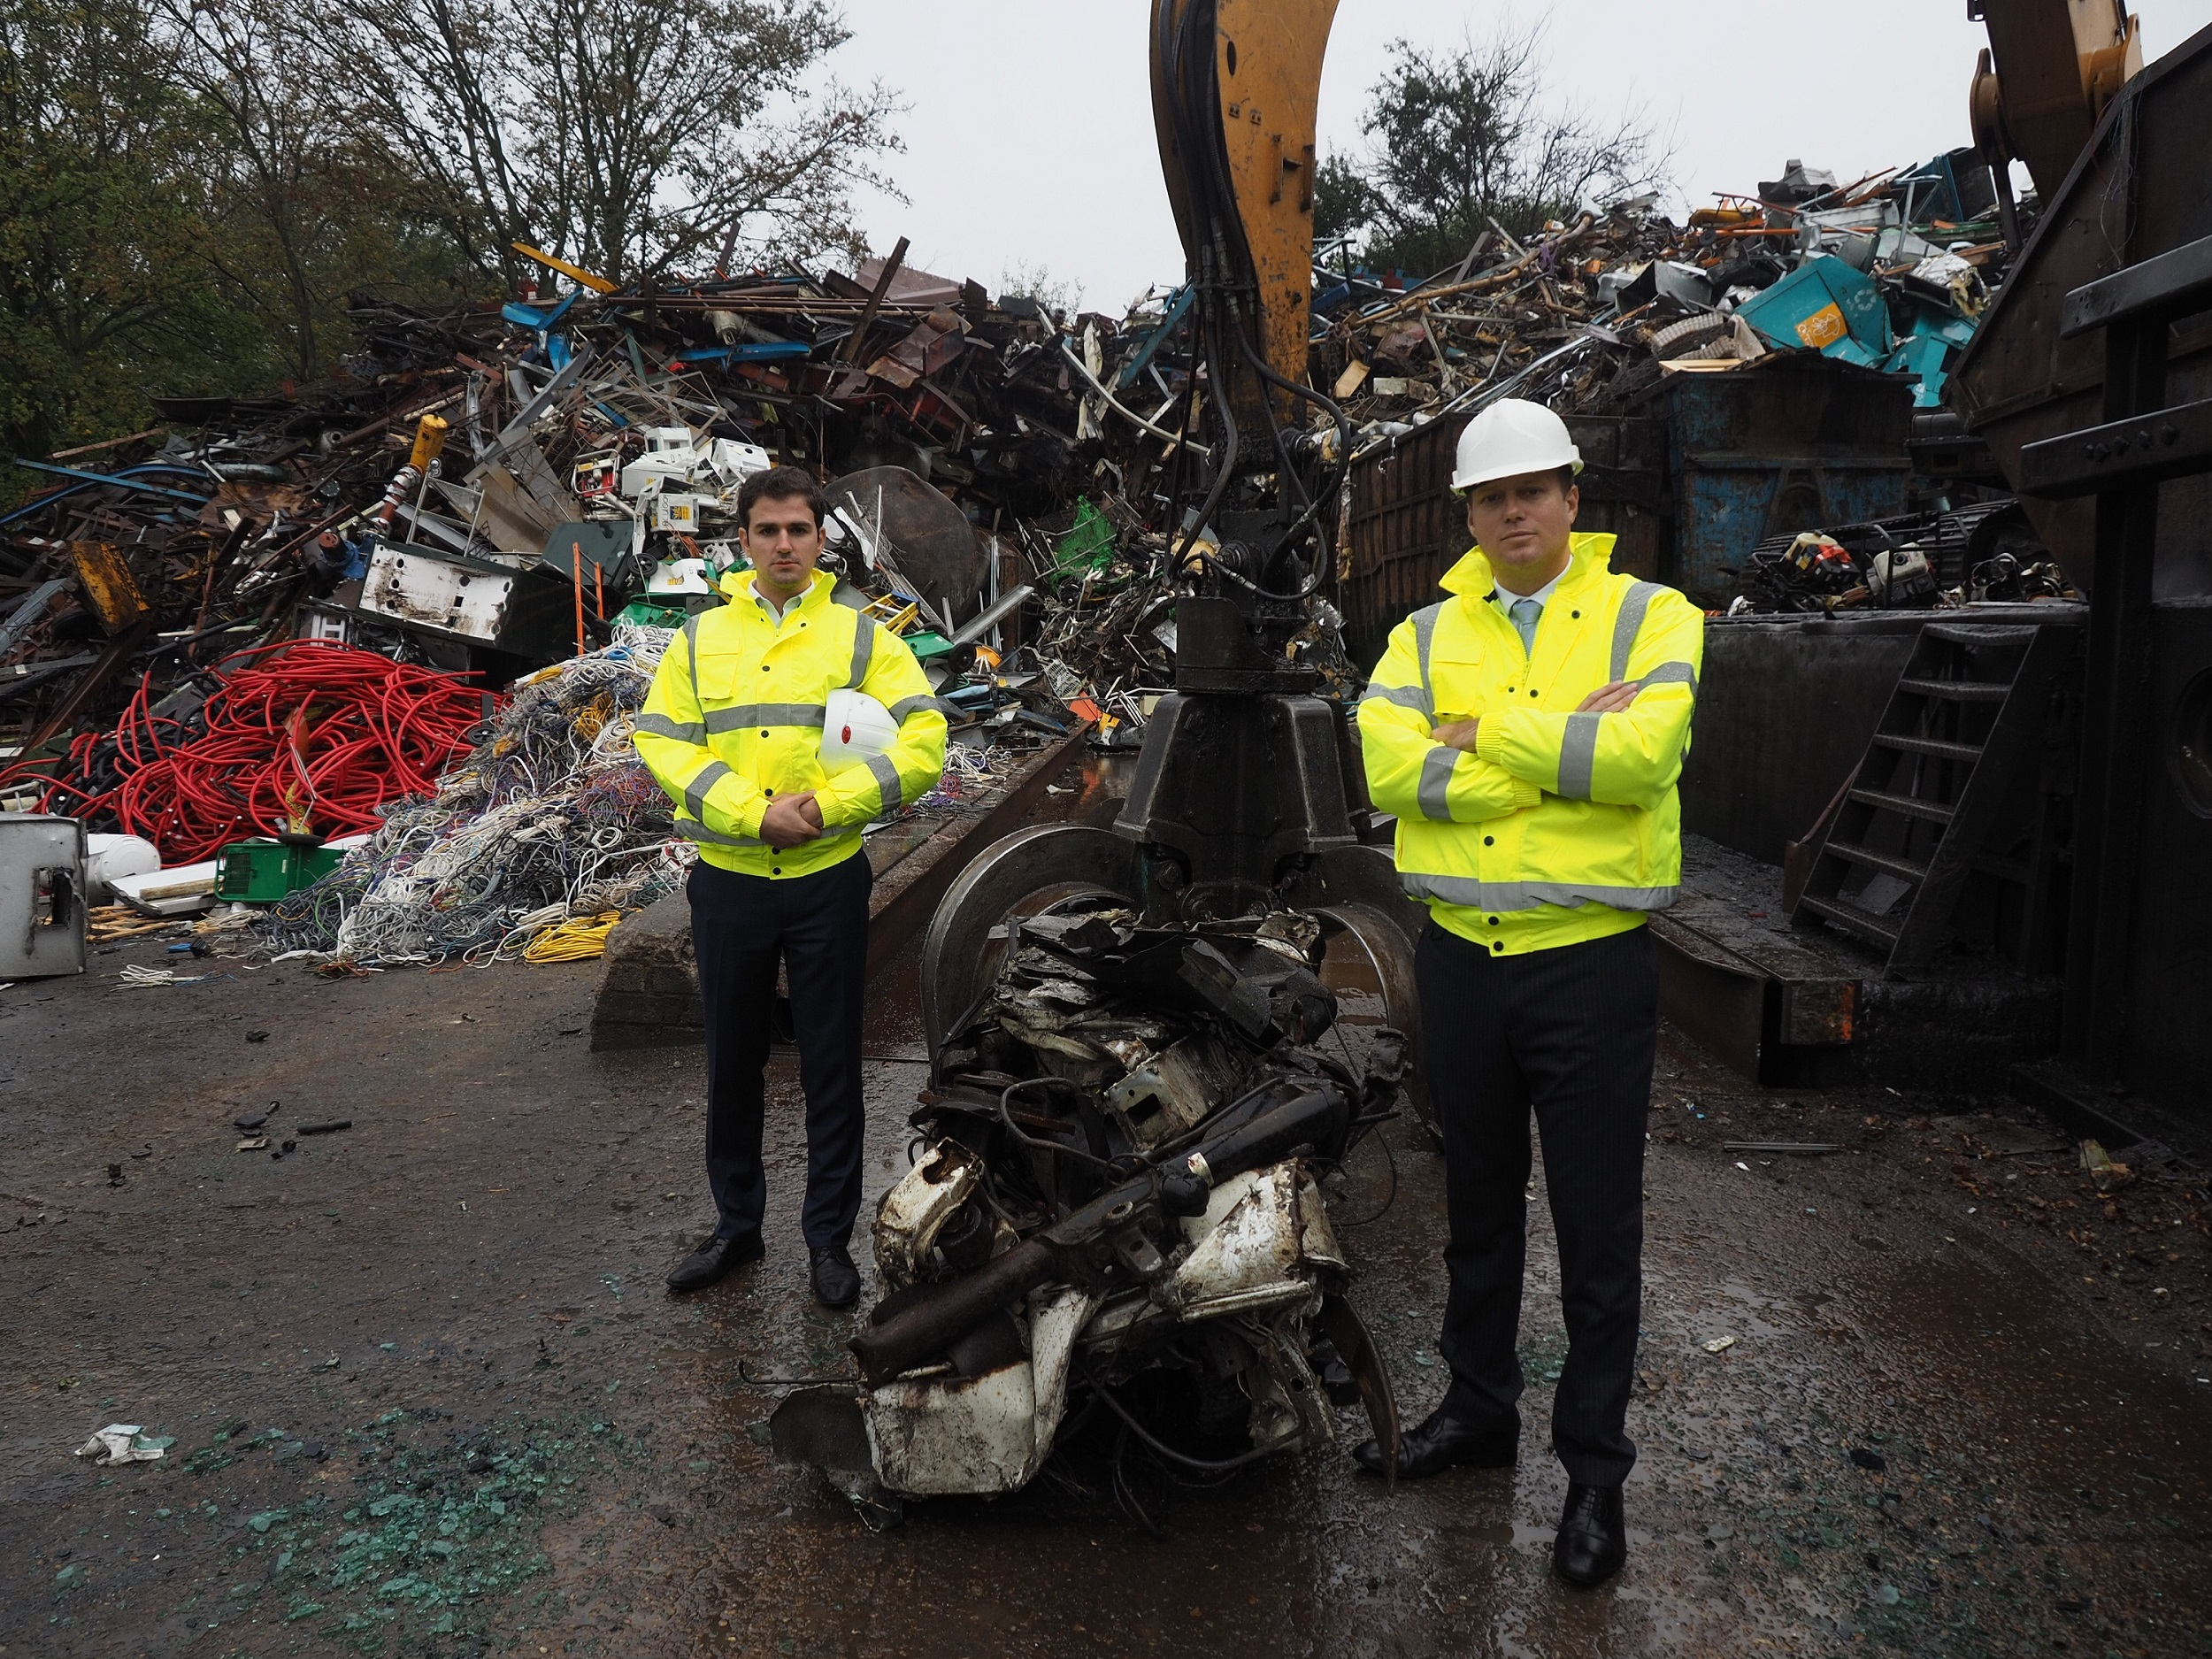 After: Councillor Roberto Weeden-Sanz (left), Chair of the Safer Communities Partnership Board, and Leader of Barnet Council, Councillor Dan Thomas, at the truck crushing